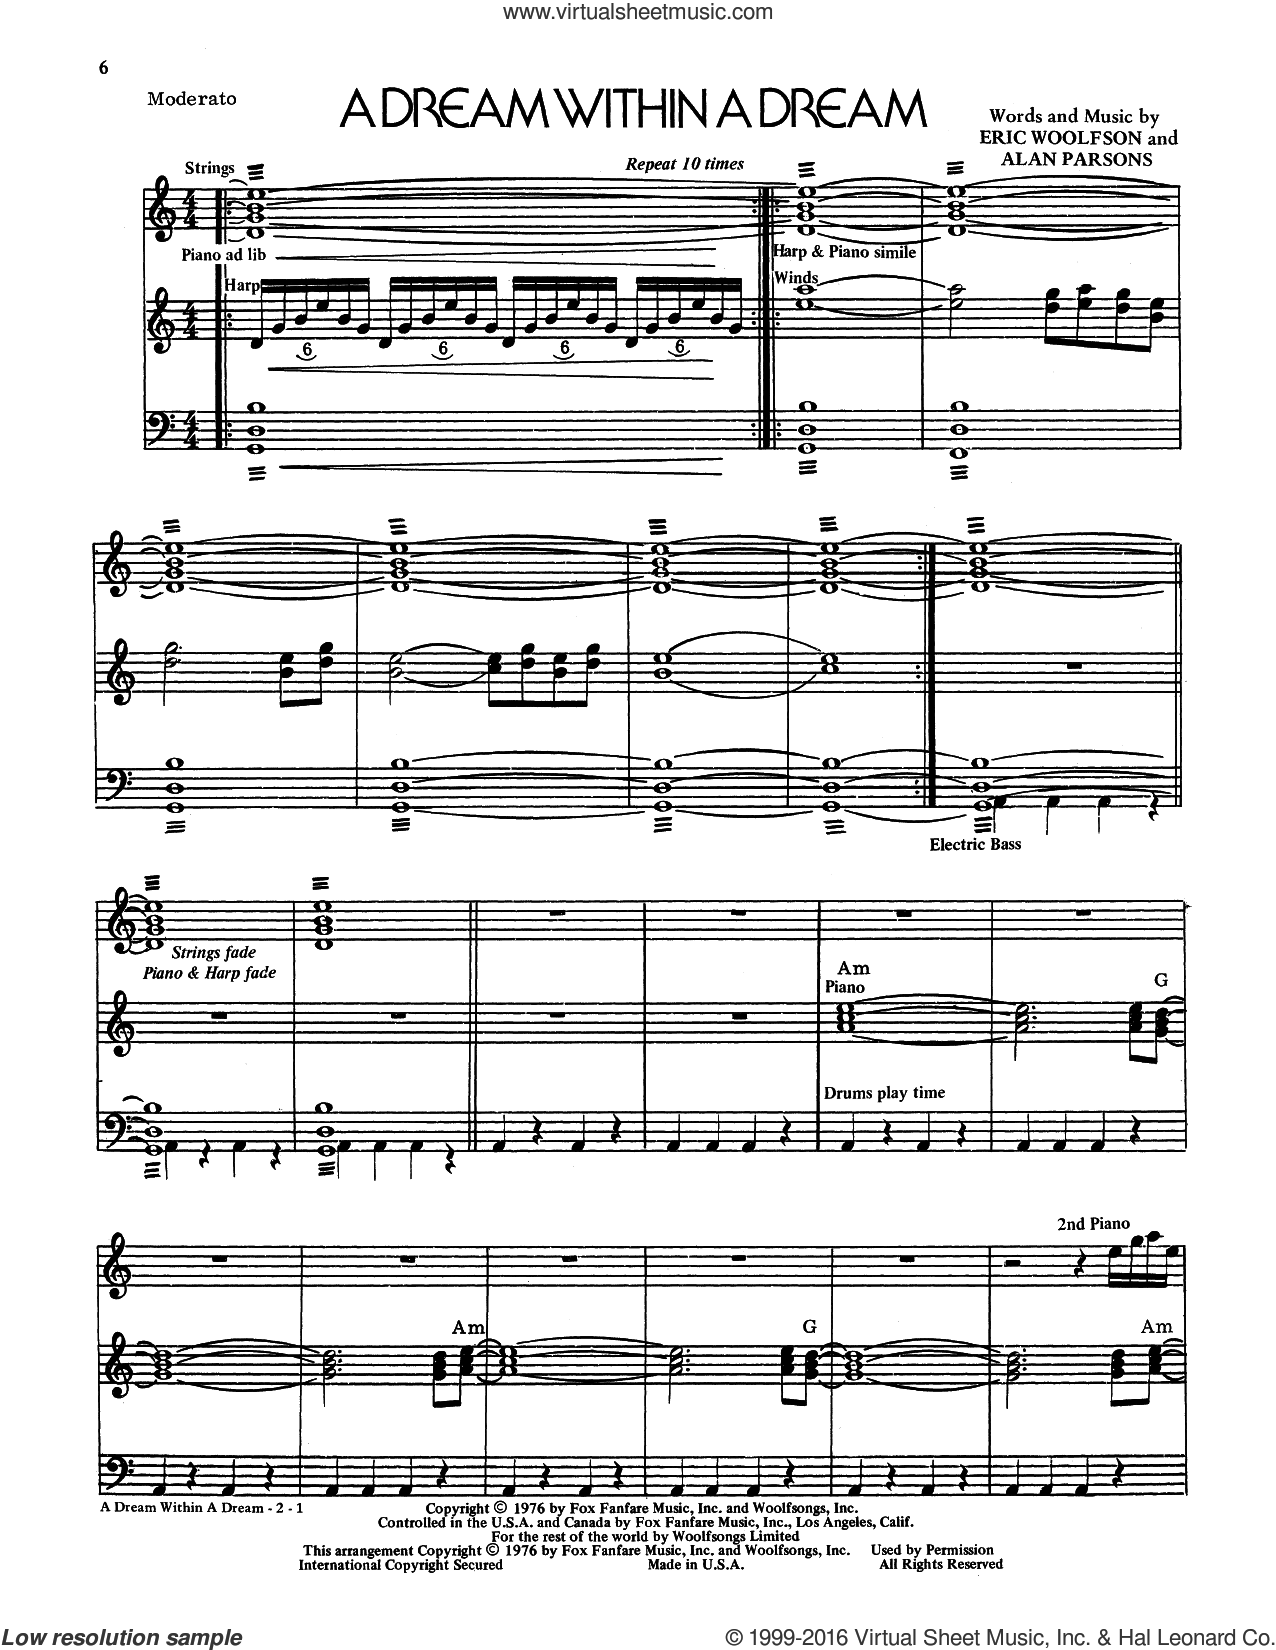 A Dream Within A Dream sheet music for voice and piano by Alan Parsons Project. Score Image Preview.